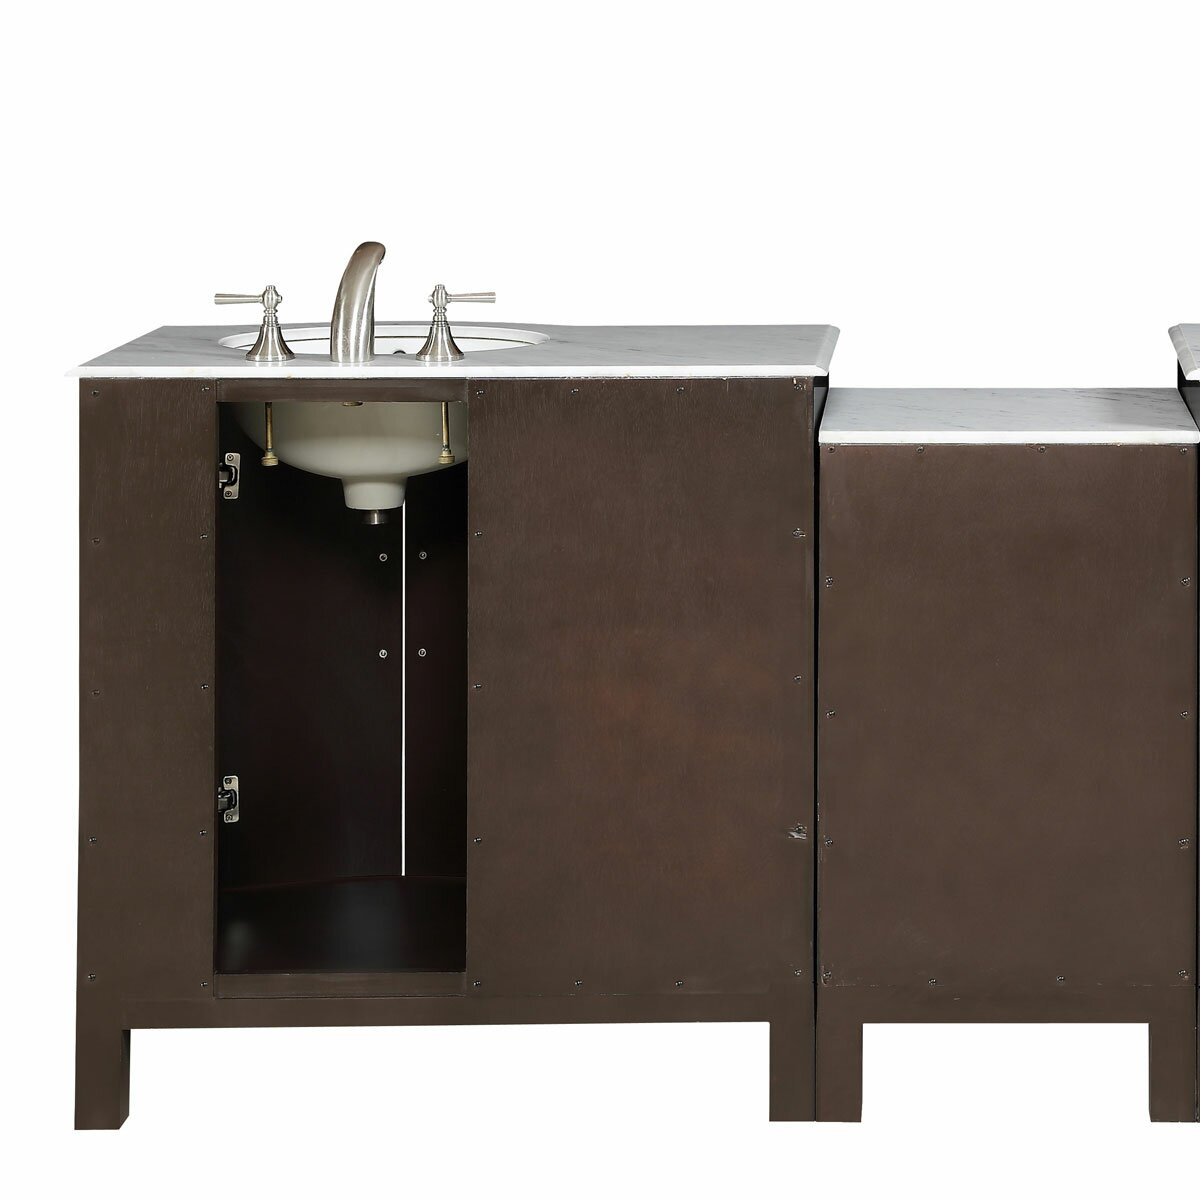 Silkroad exclusive 53 5 single right sink bathroom vanity set reviews wayfair Bathroom sink and vanity sets